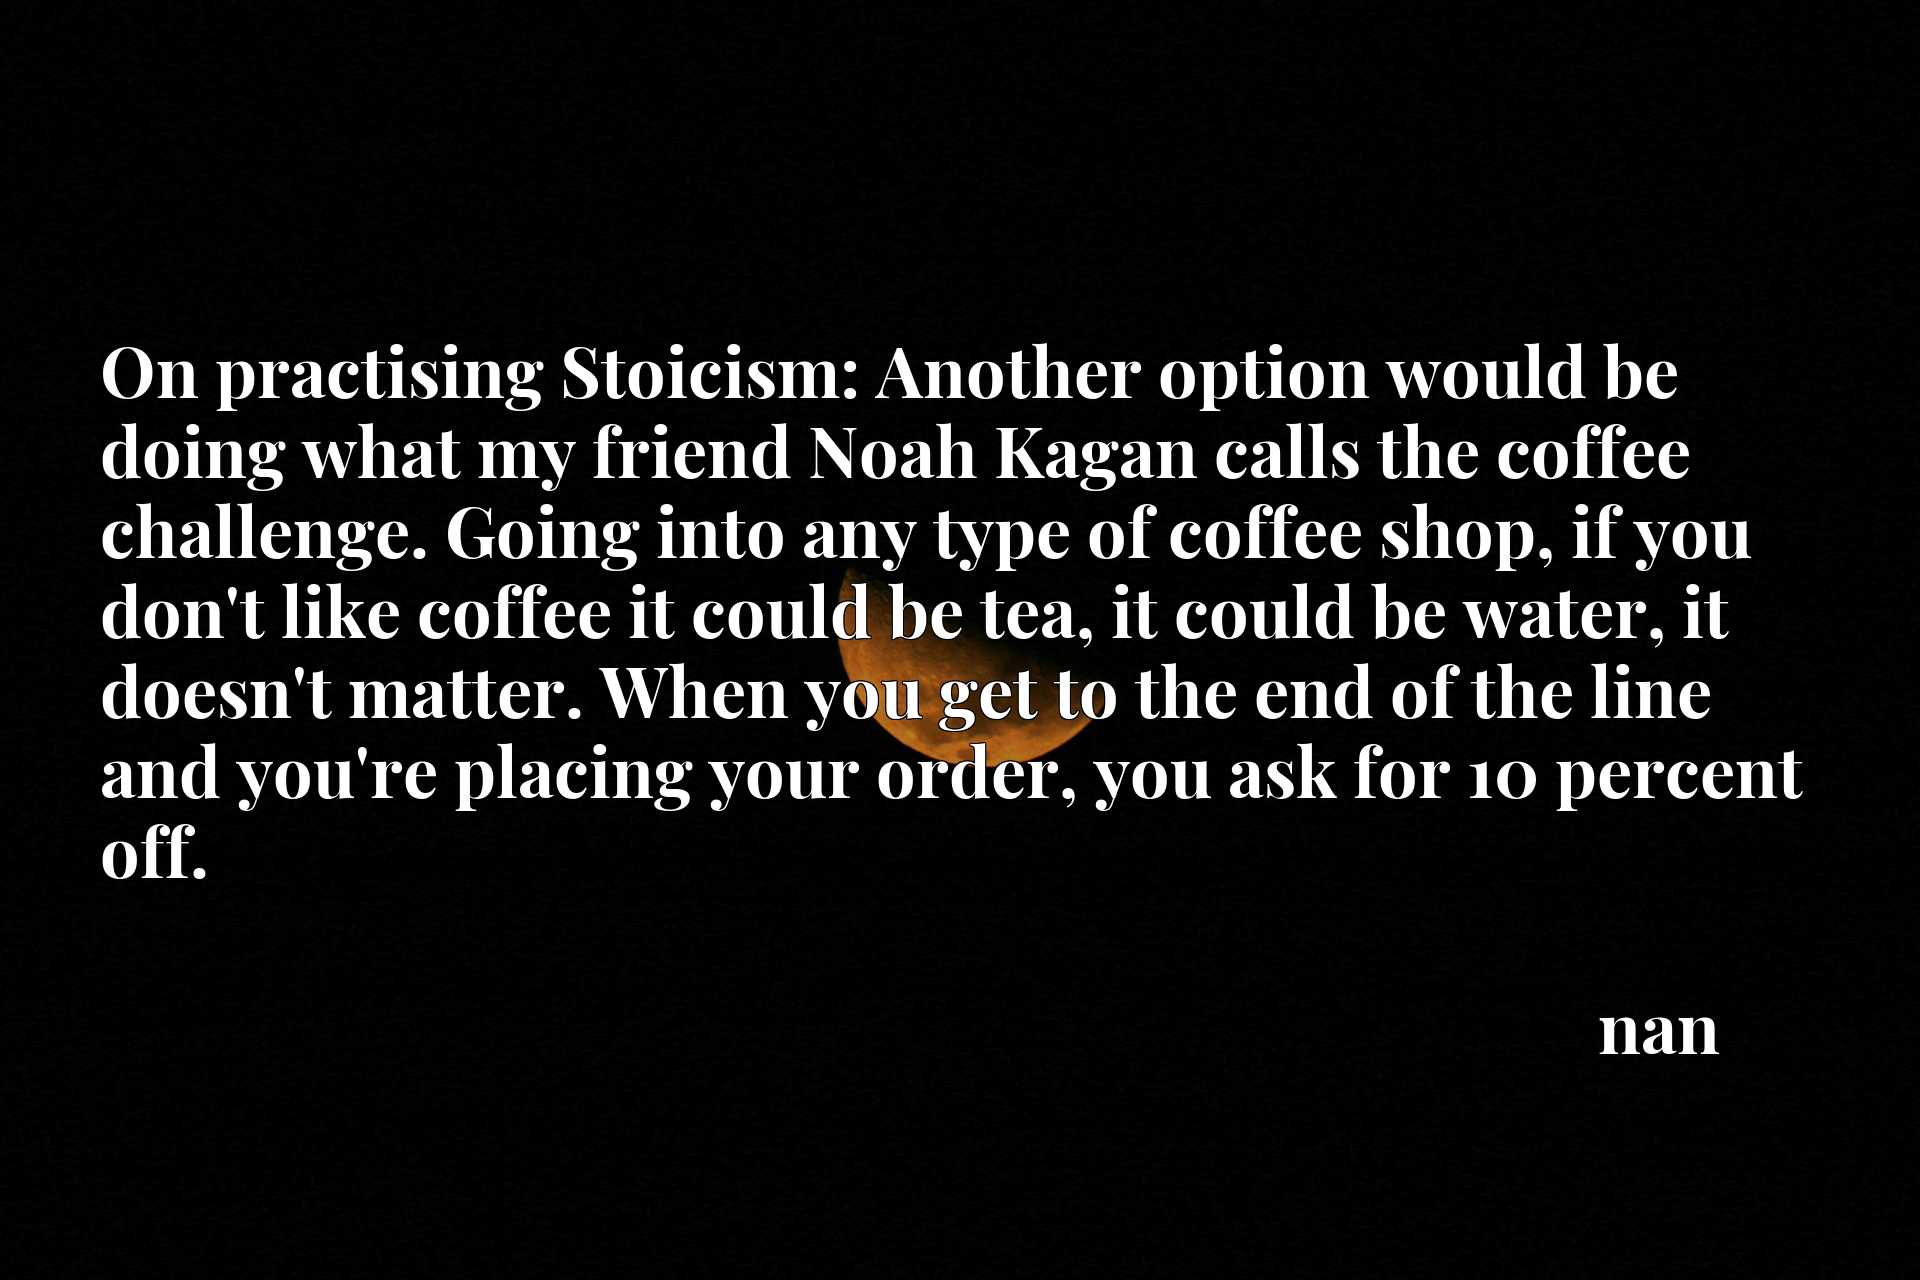 On practising Stoicism: Another option would be doing what my friend Noah Kagan calls the coffee challenge. Going into any type of coffee shop, if you don't like coffee it could be tea, it could be water, it doesn't matter. When you get to the end of the line and you're placing your order, you ask for 10 percent off.